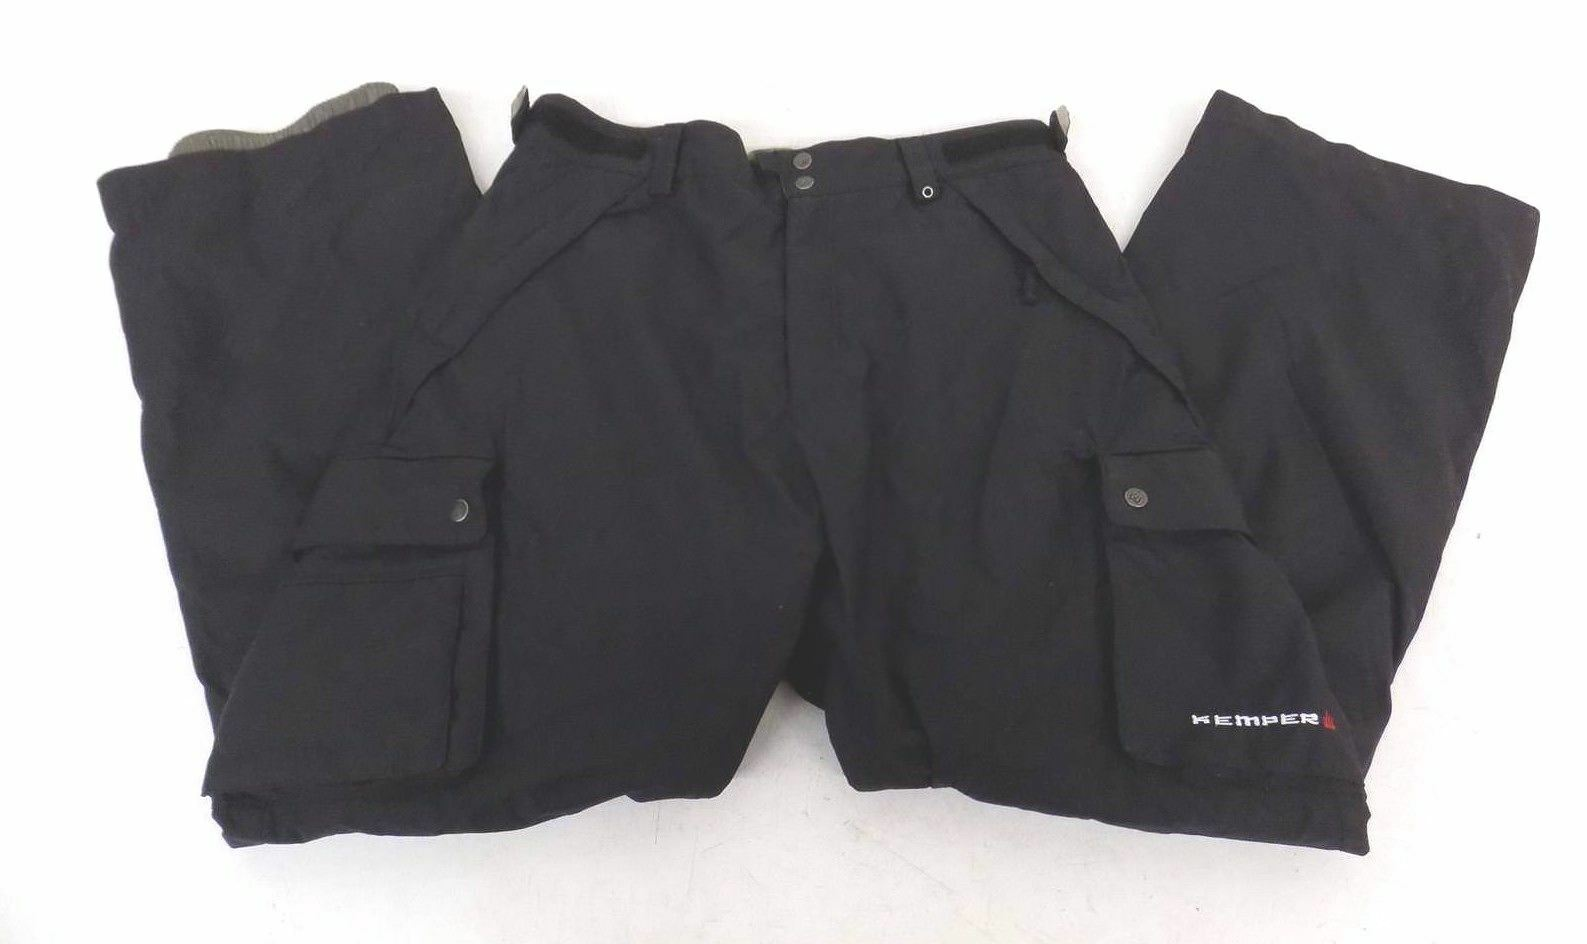 Kemper High-Quality Microfiber  Lined Cargo-Style Snowboard Pants Men's XL GREAT  classic style